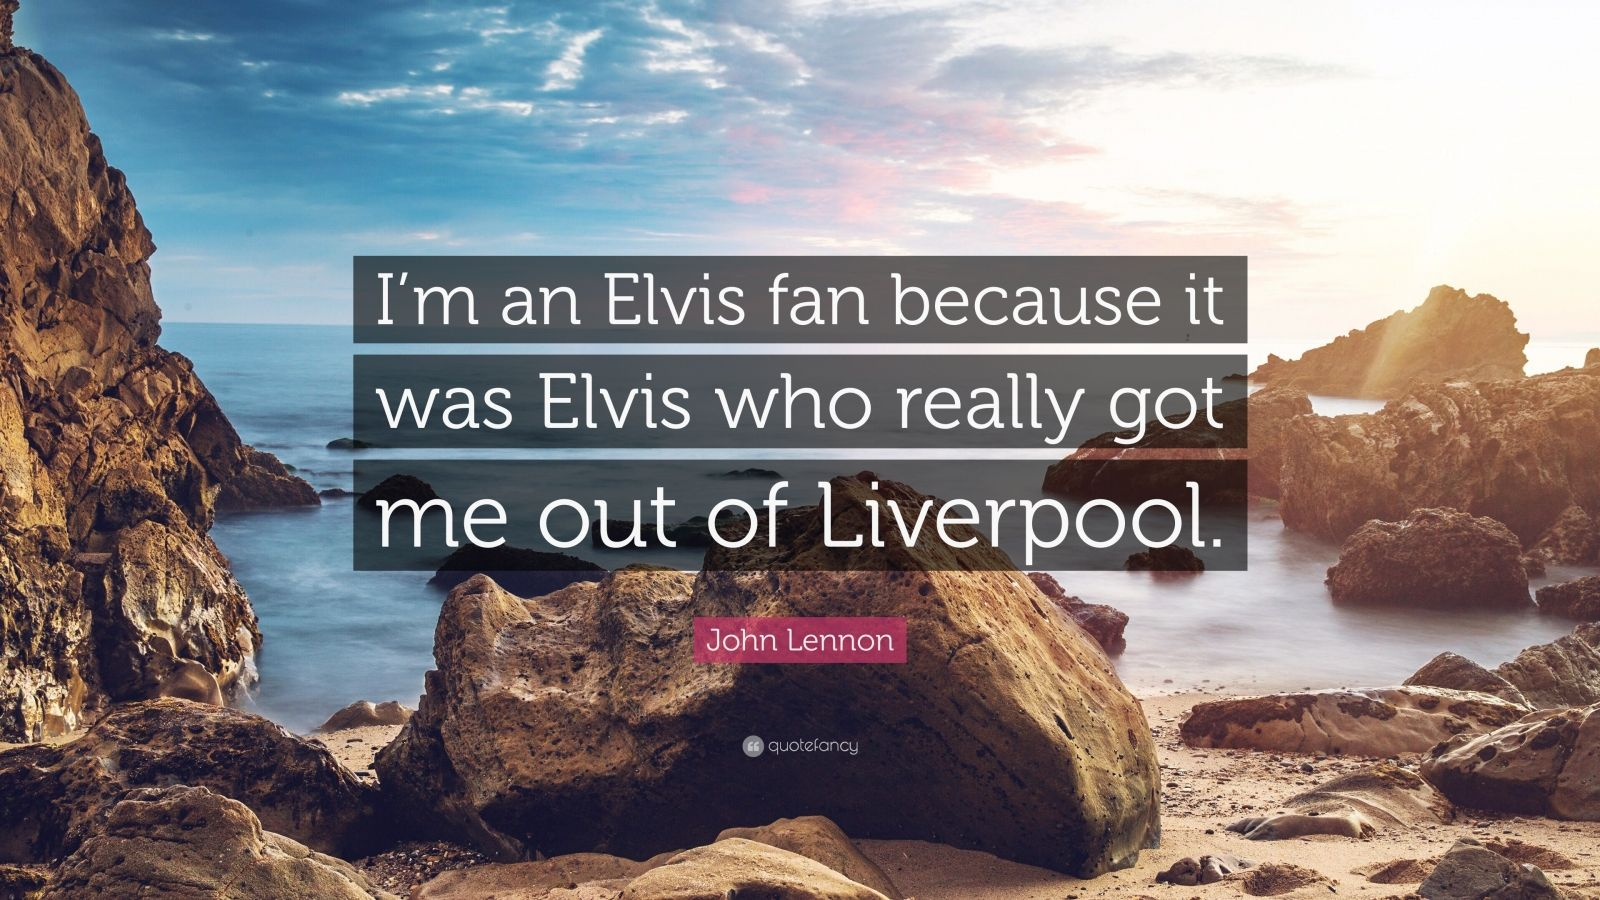 """John Lennon Quote: """"I'm an Elvis fan because it was Elvis who really got me out of Liverpool."""""""